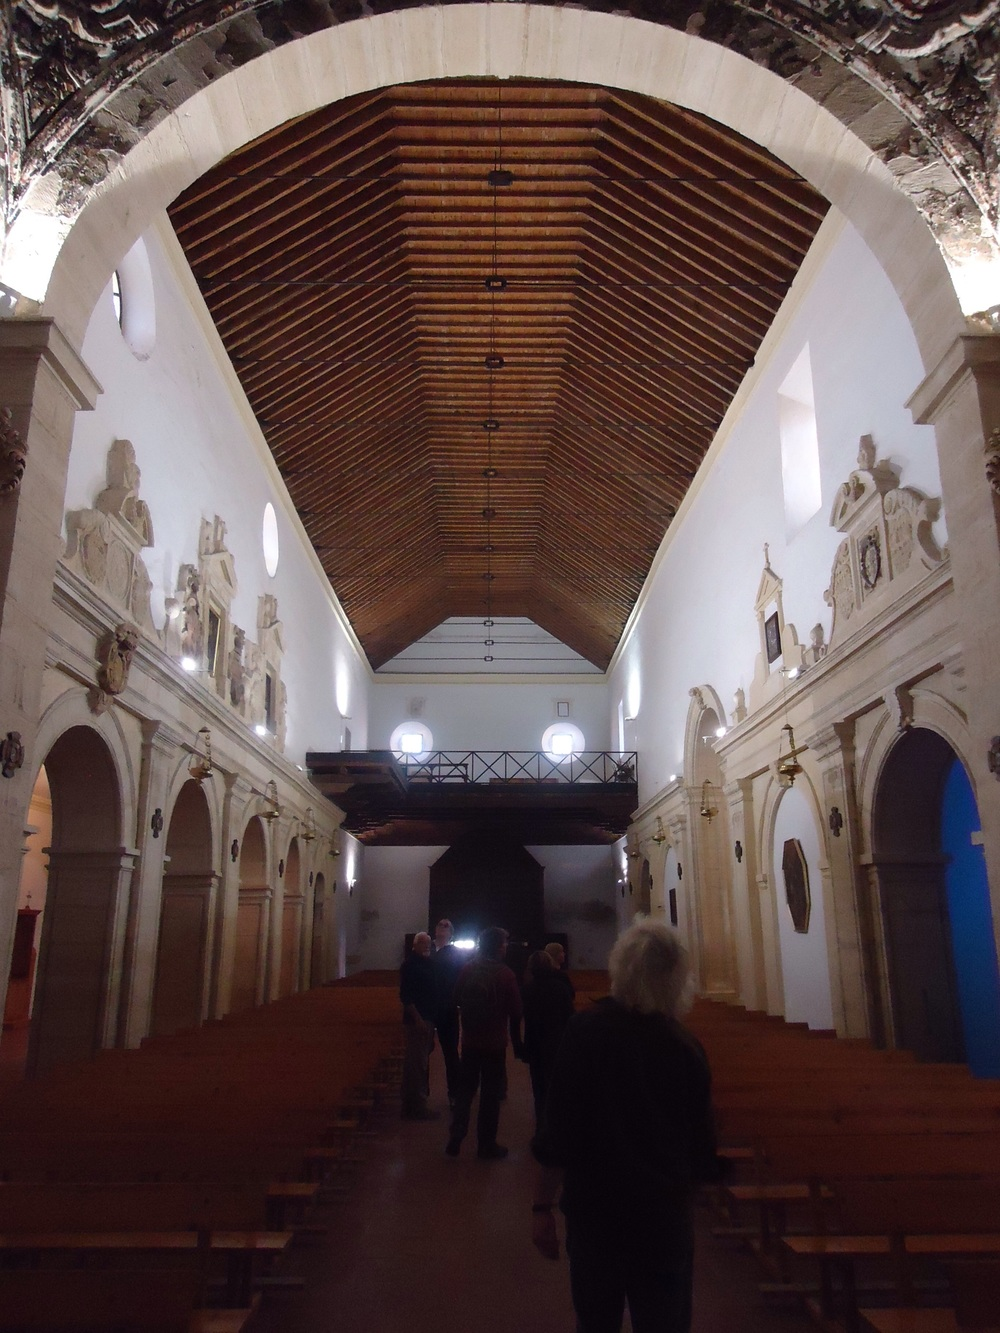 The main body of the church is quite simple with an amazing wooden ceiling and side alters